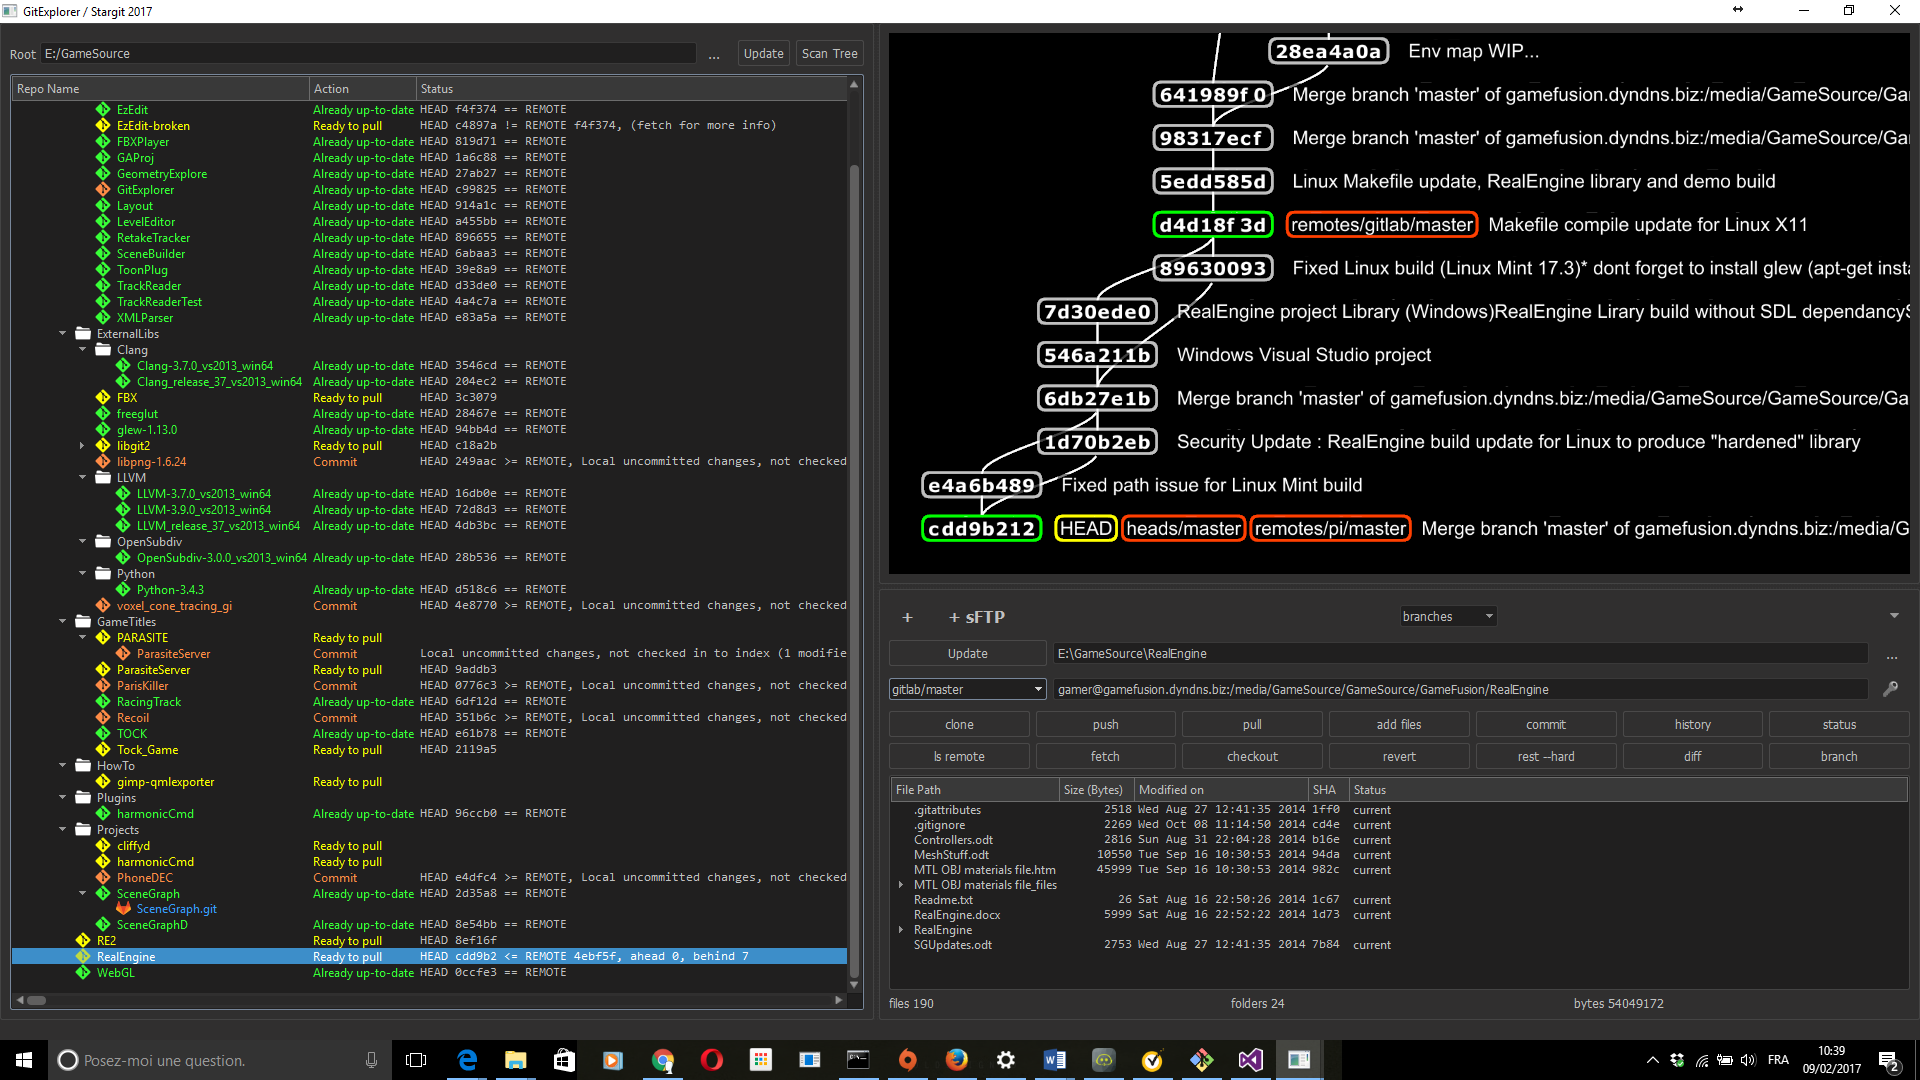 Multi repository source code project navigation with status overview and version control. To the left we visualize a dash board of repositories and sub-repositories, as seen stored locally on disk. To the right we can focus on a particular repository which offers a 3D visualisation of the commit history and standard git functionality.